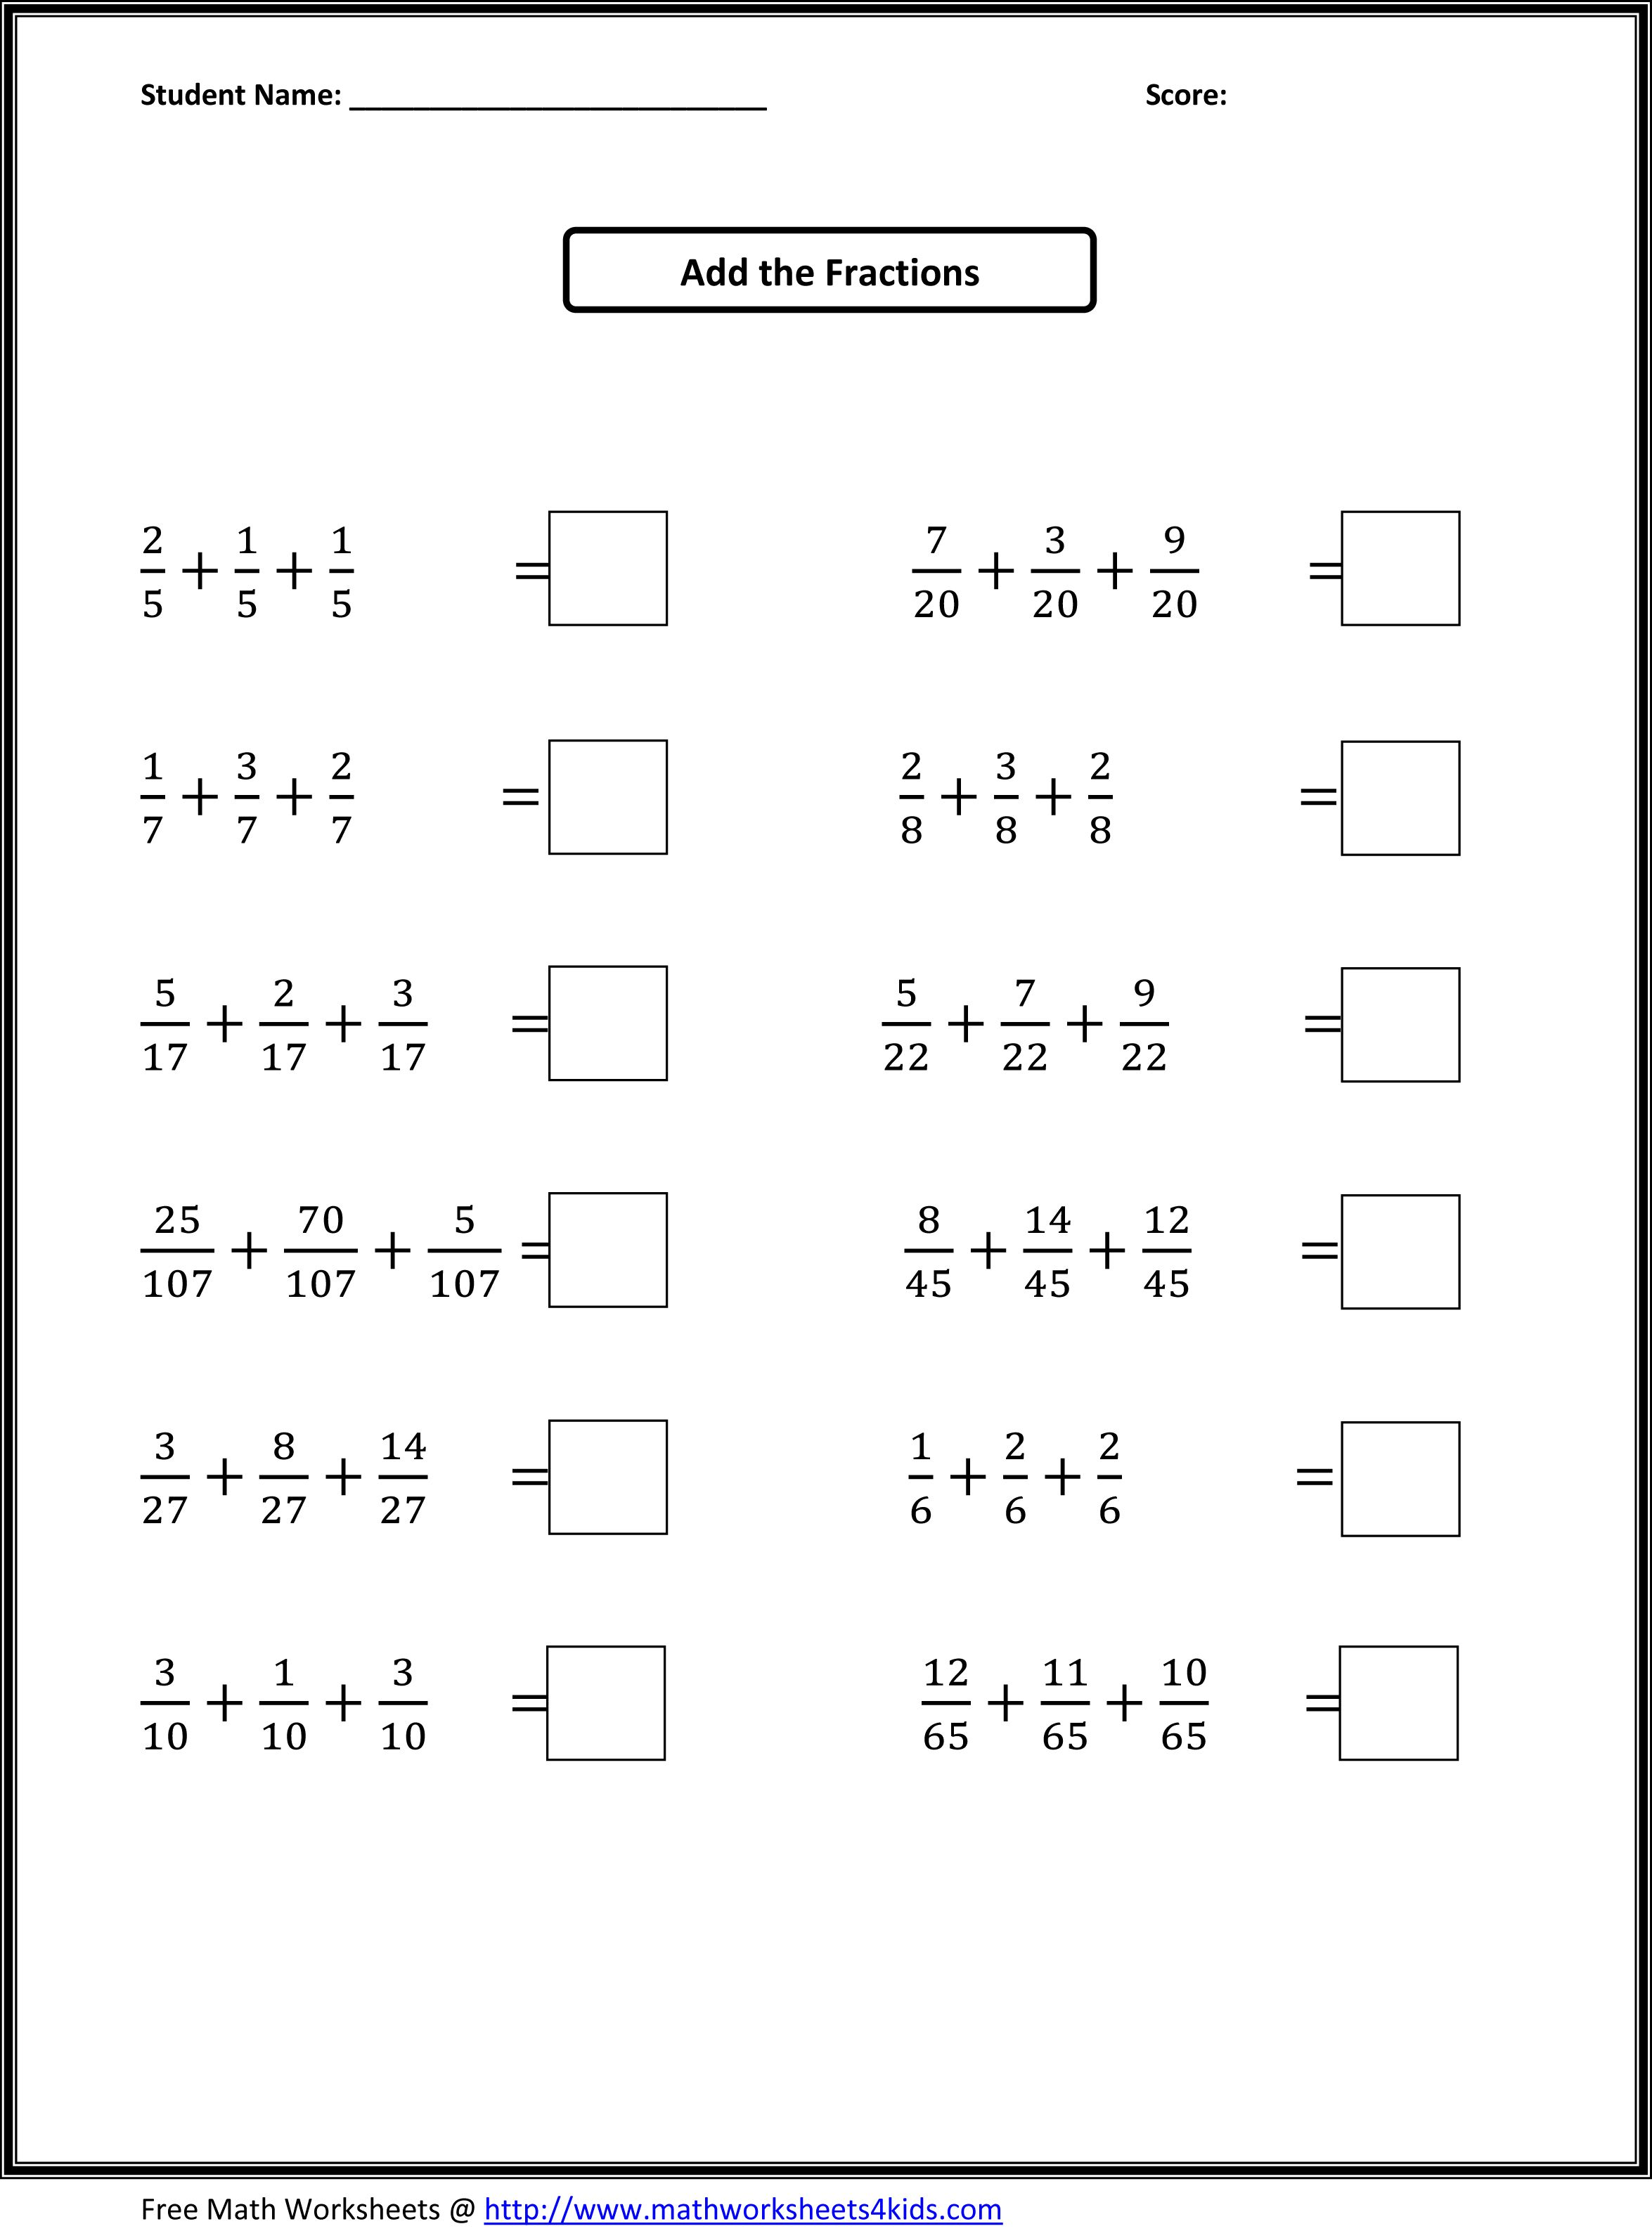 Worksheets Math For 4th Graders Worksheets worksheets for all early ed grades topics of math math